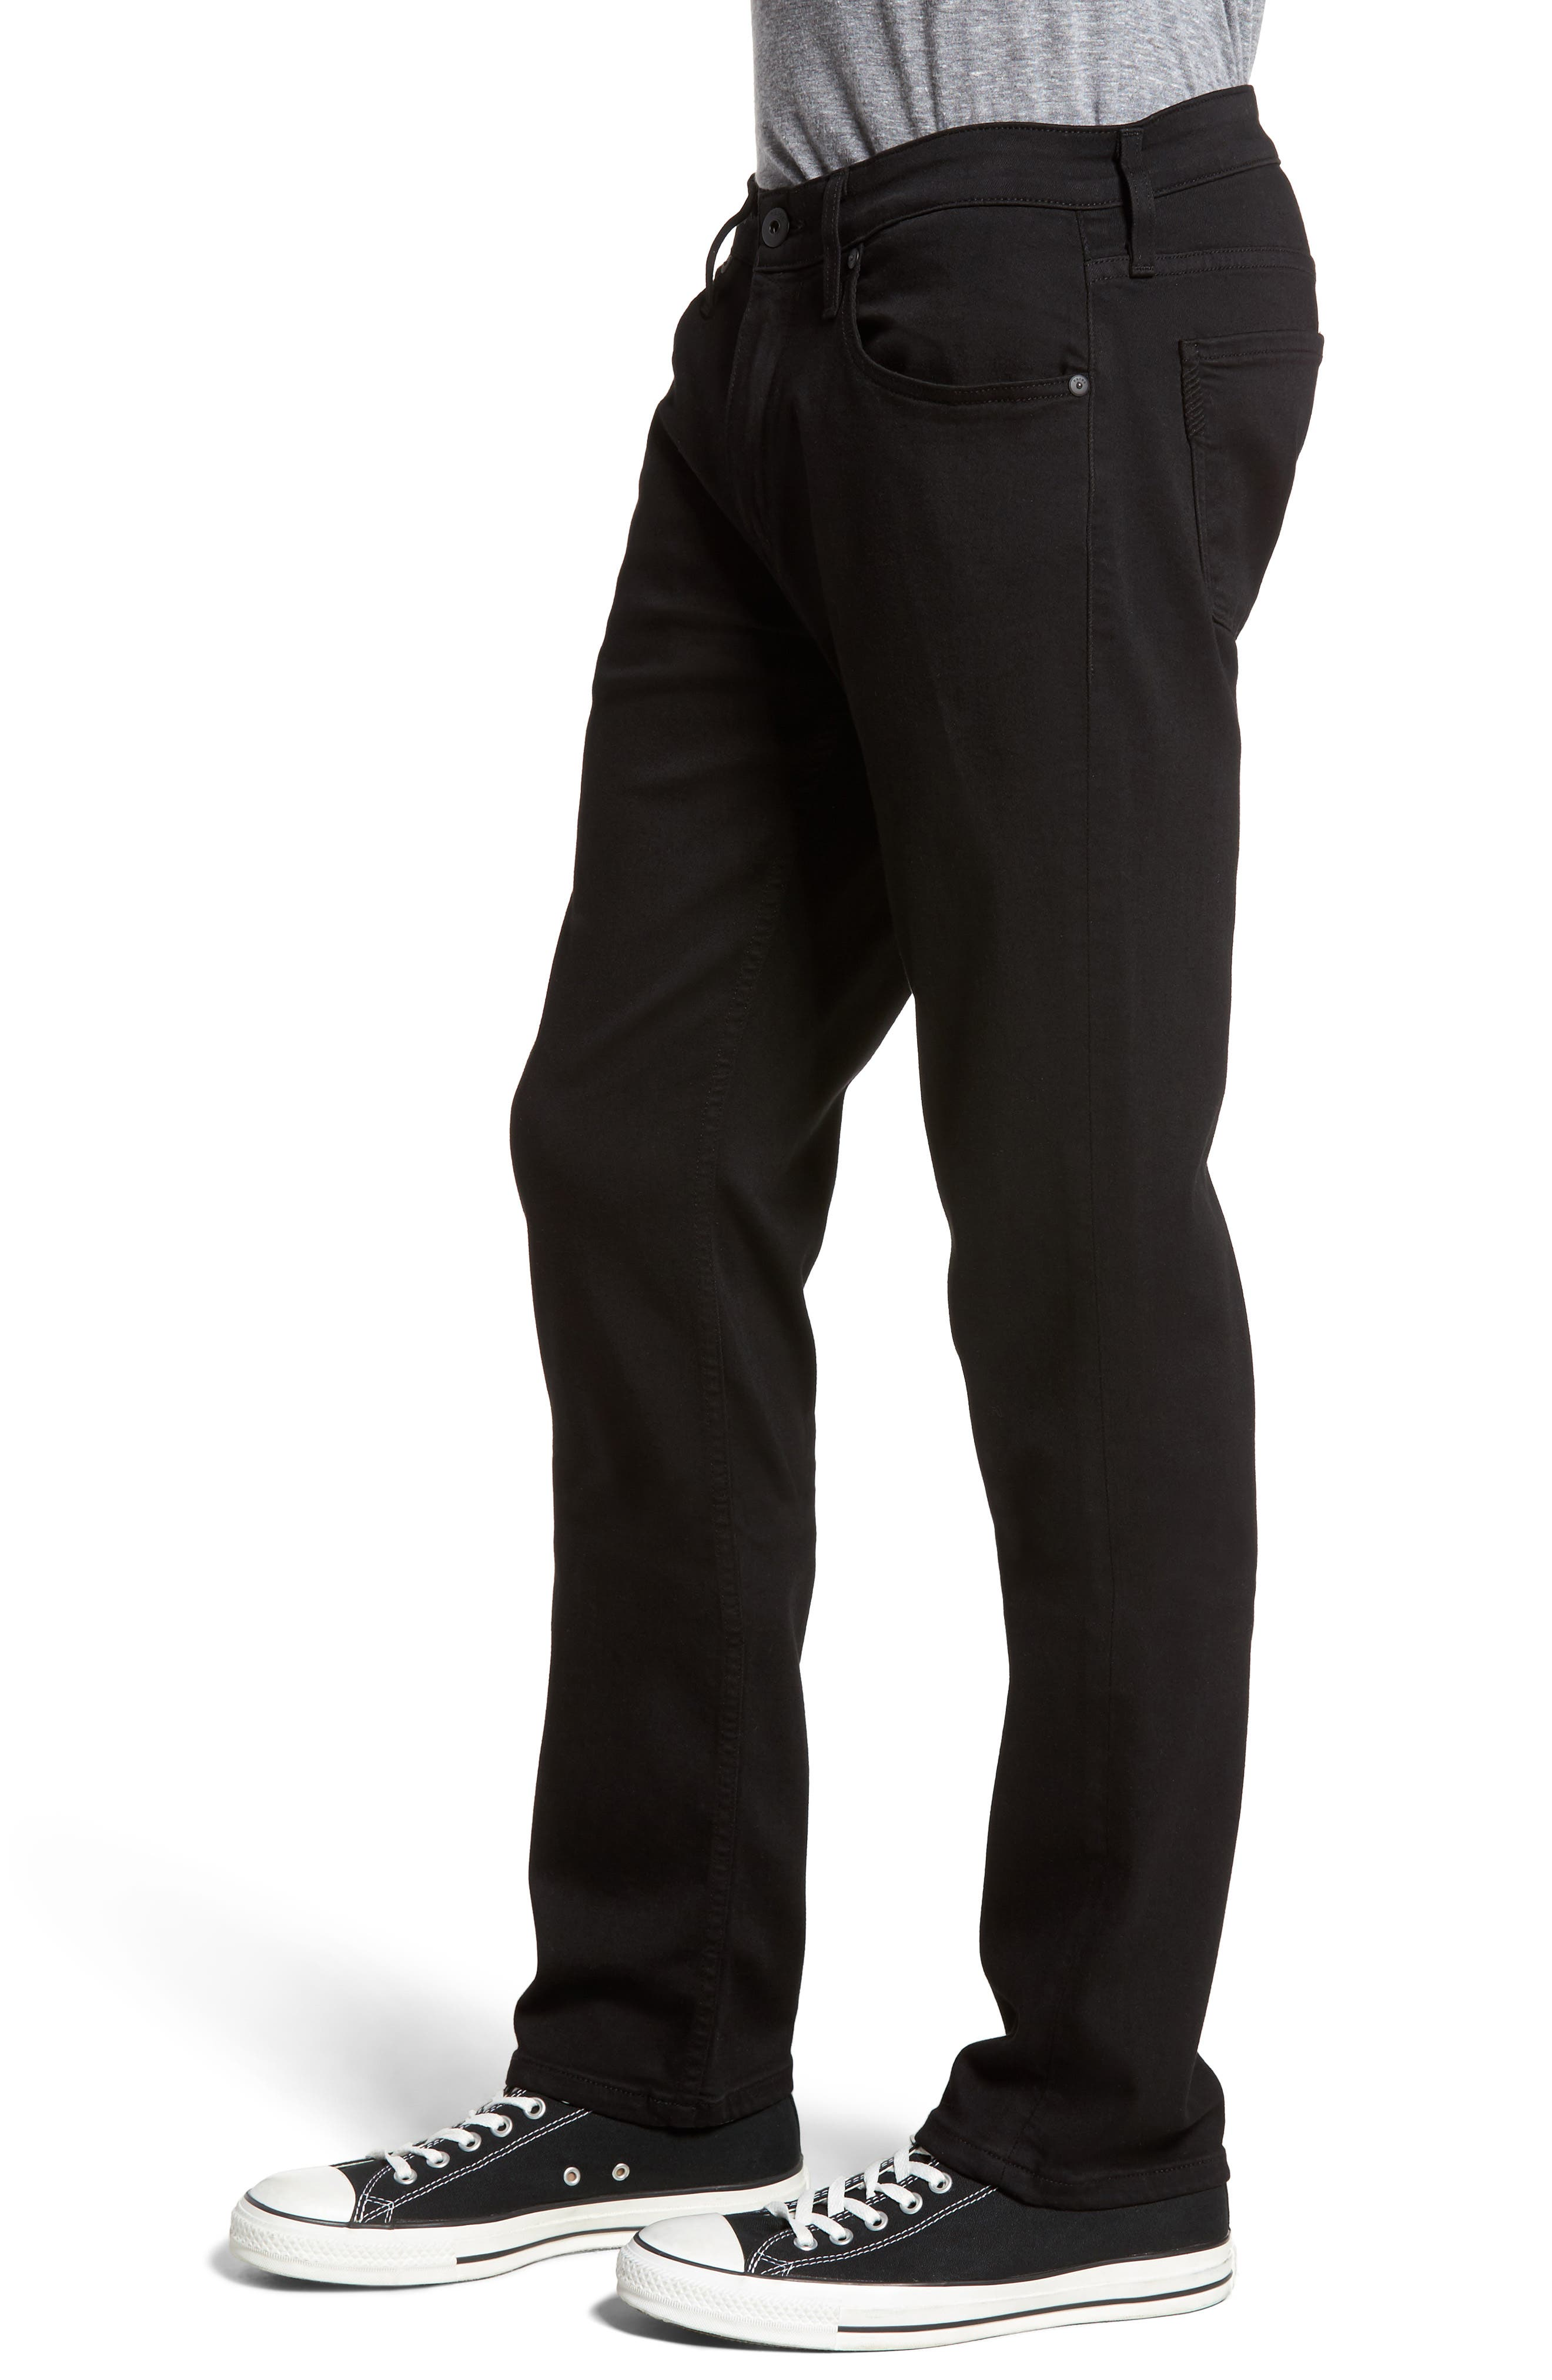 PAIGE, Federal Slim Straight Leg Jeans, Alternate thumbnail 4, color, BLACK SHADOW